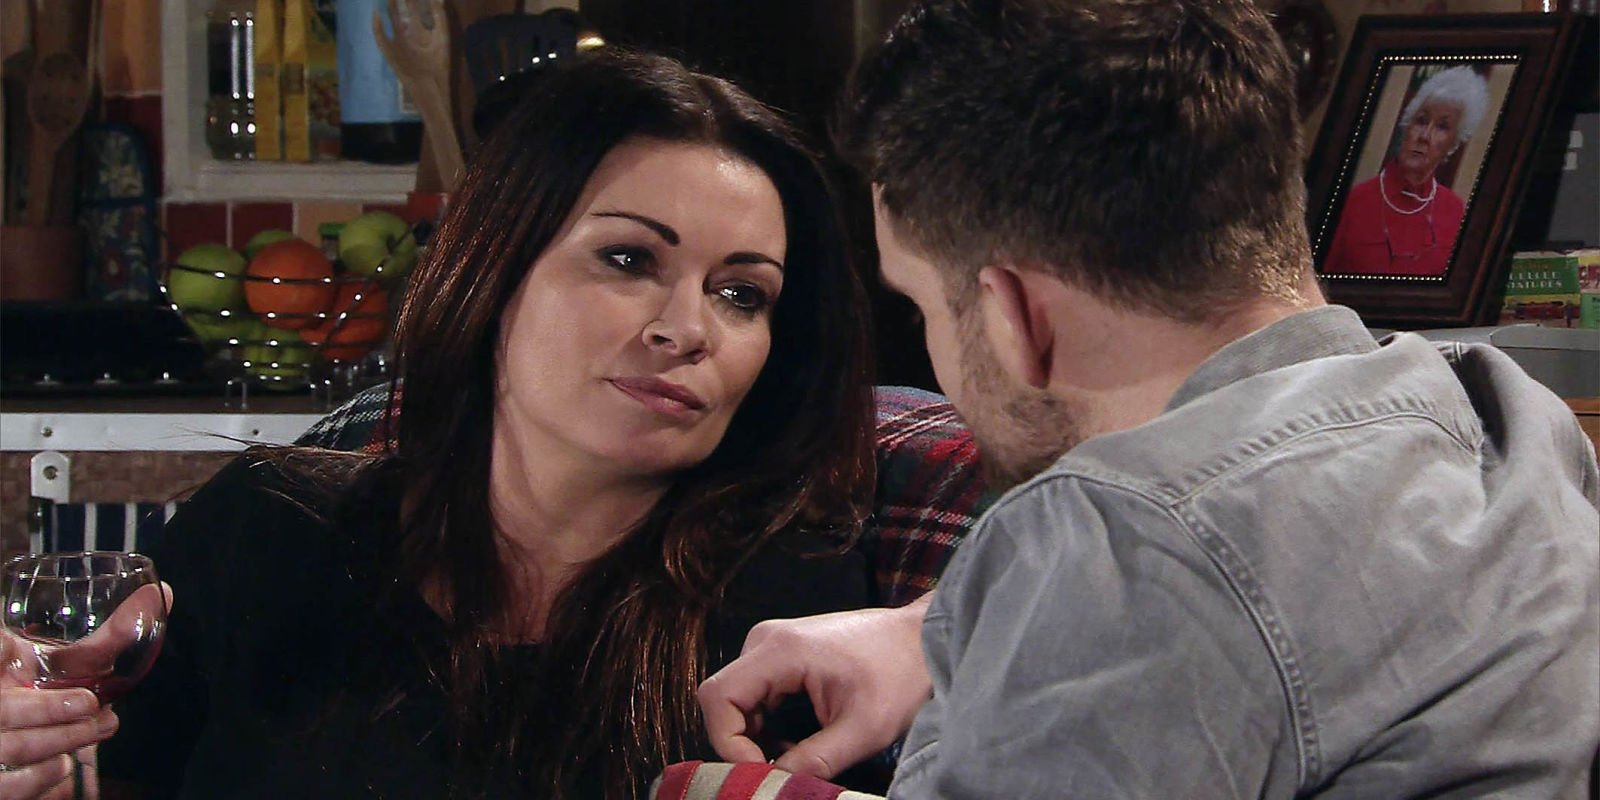 Coronation Street reveals the identity of Carla Connor's new love interest